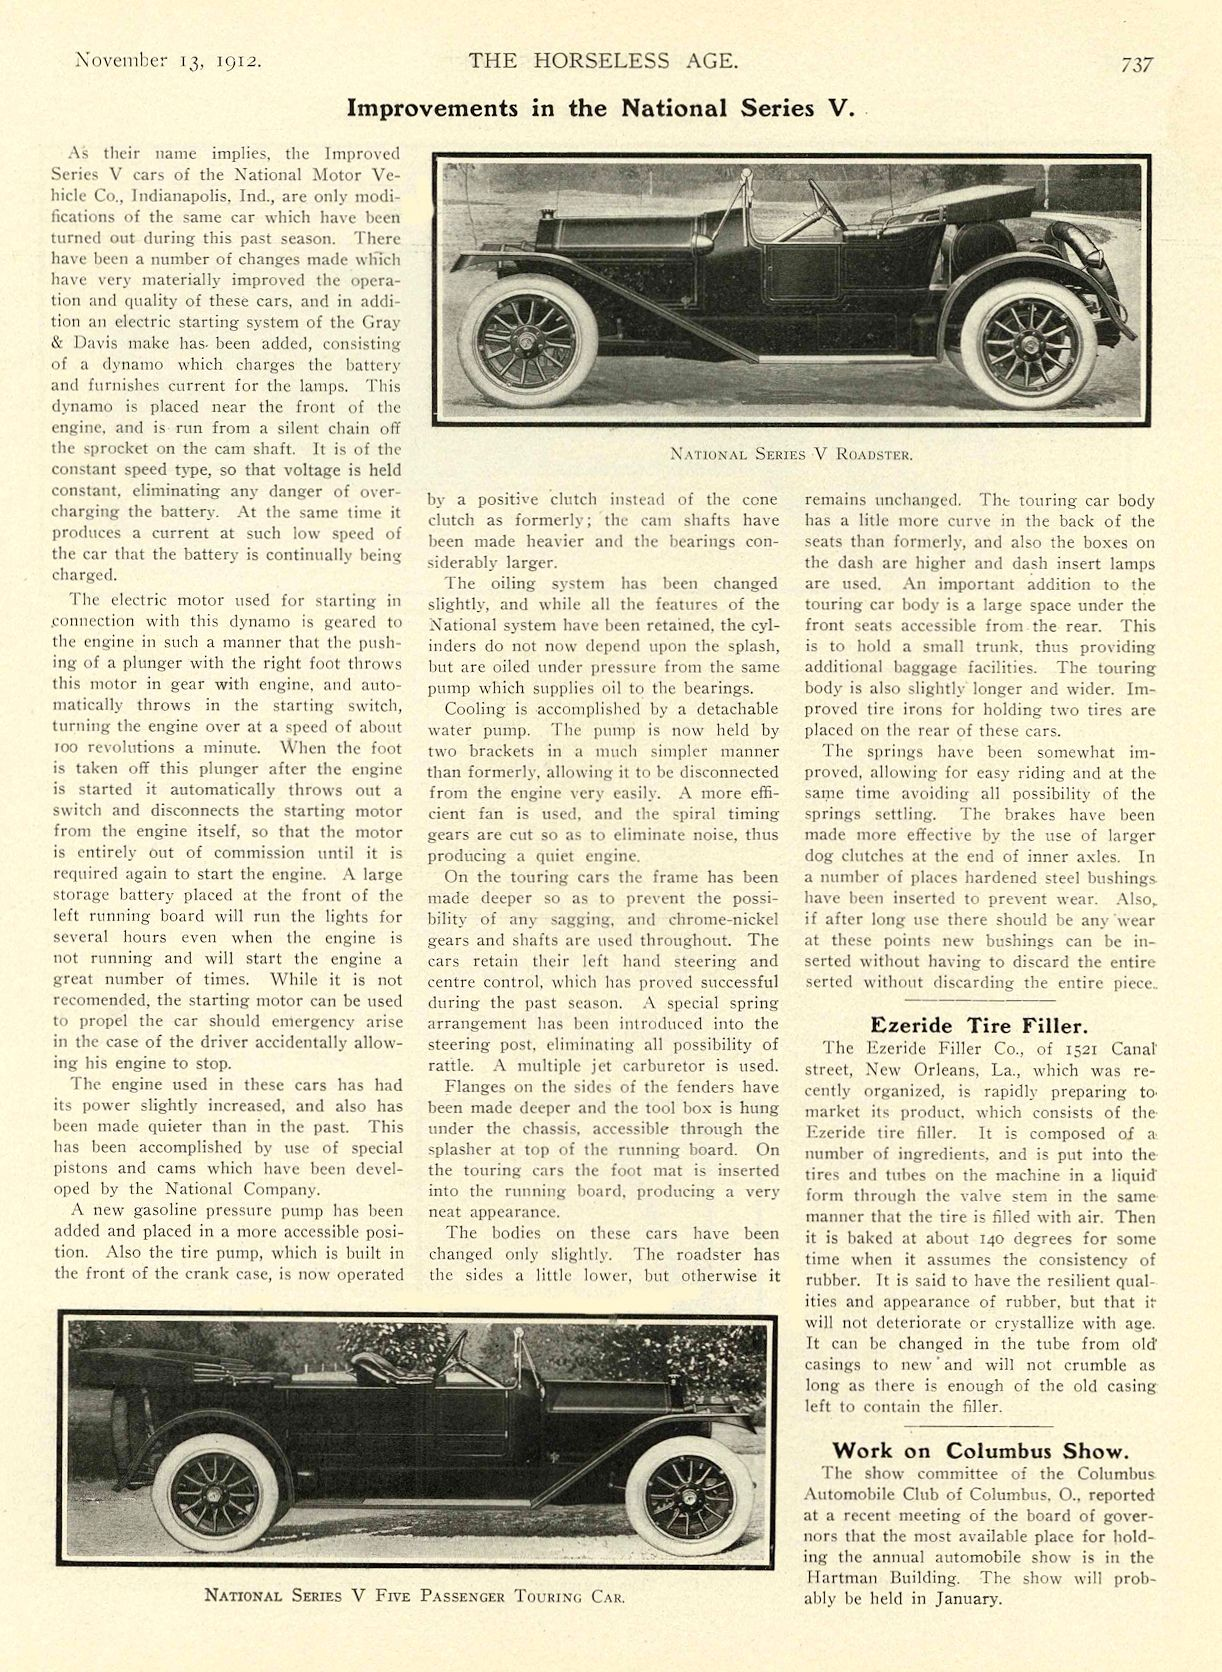 1912 11 13 NATIONAL Article Improvements in the National Series V National Motor Vehicle Co. Indianapolis, IND THE HORSELESS AGE November 13, 1912 8.5″x12″ page 737